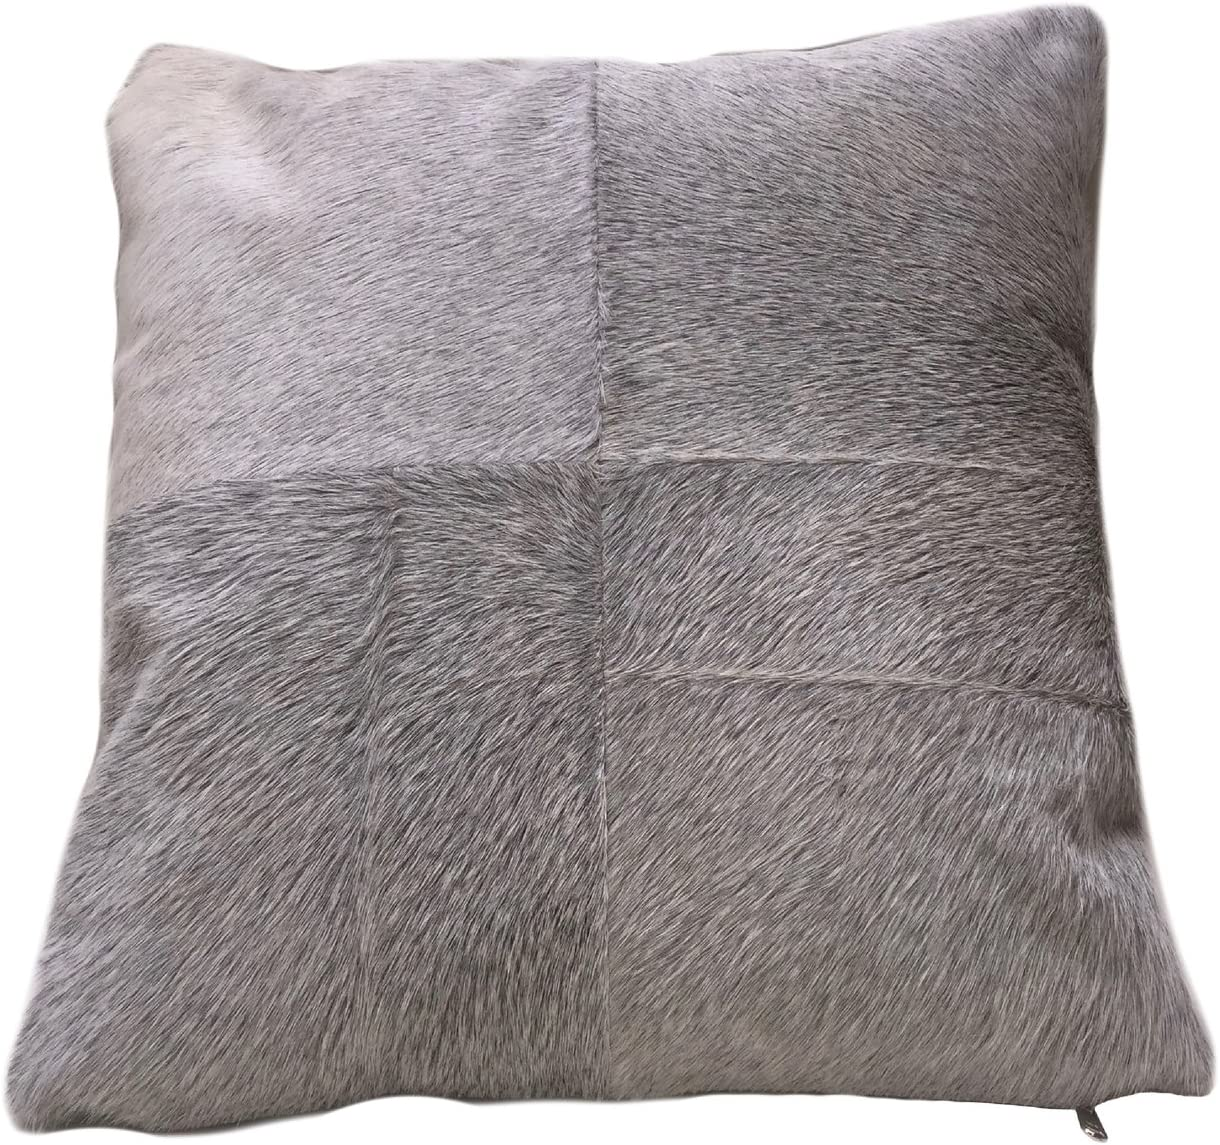 Foreign Affairs Home Décor Grey Cowhide Pillow ESEL. Double Sided Leather Pillow.